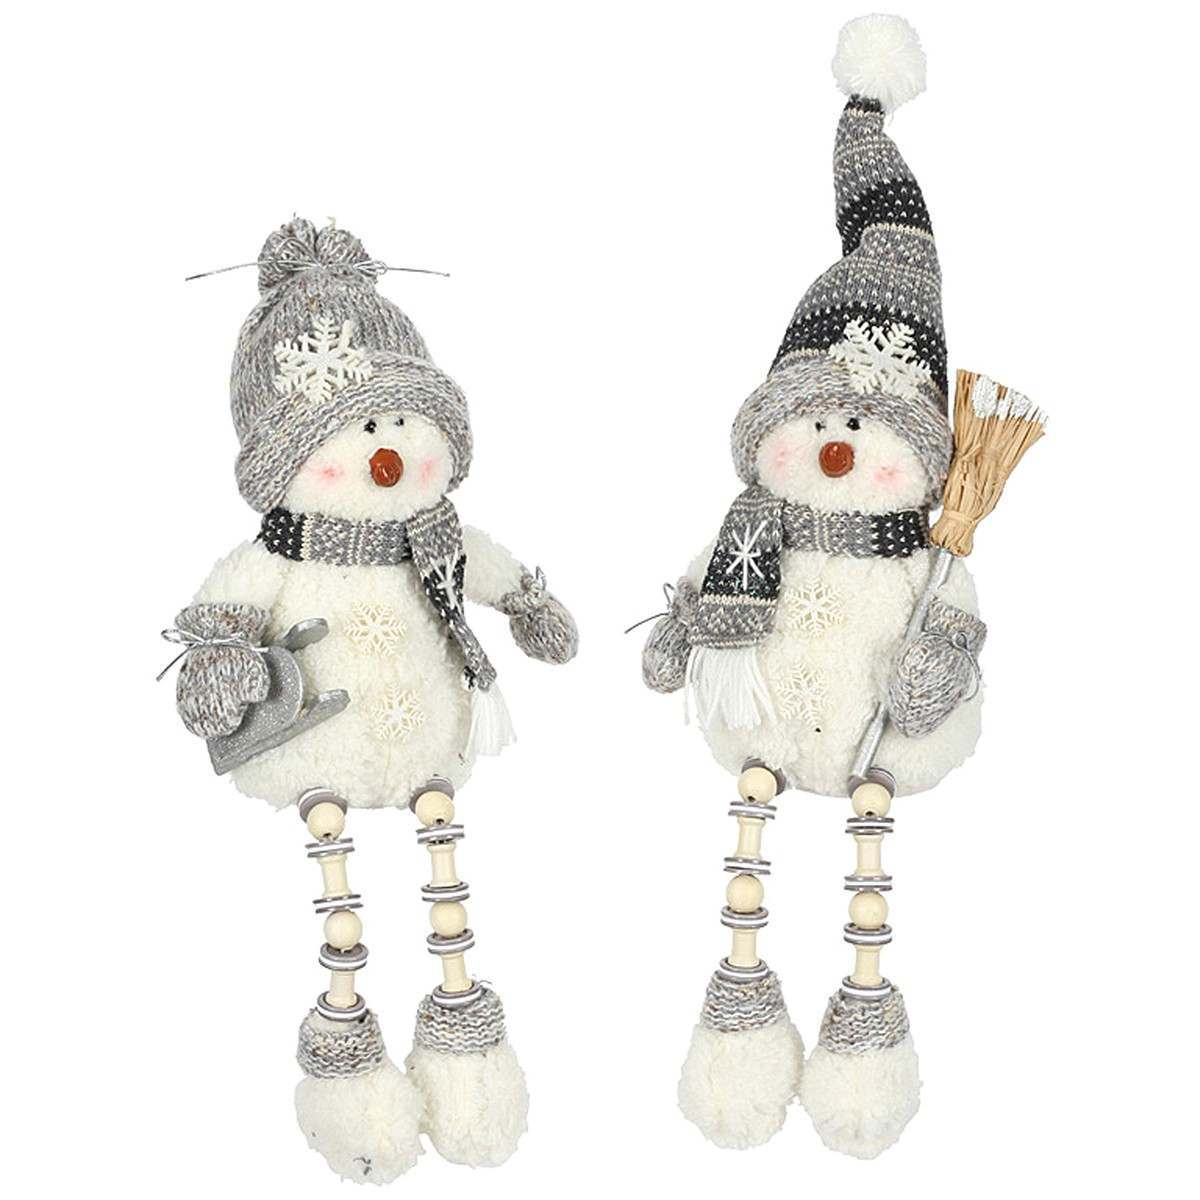 Click to view product details and reviews for Snowman Ornaments 35cm 2 Asstd Designs.